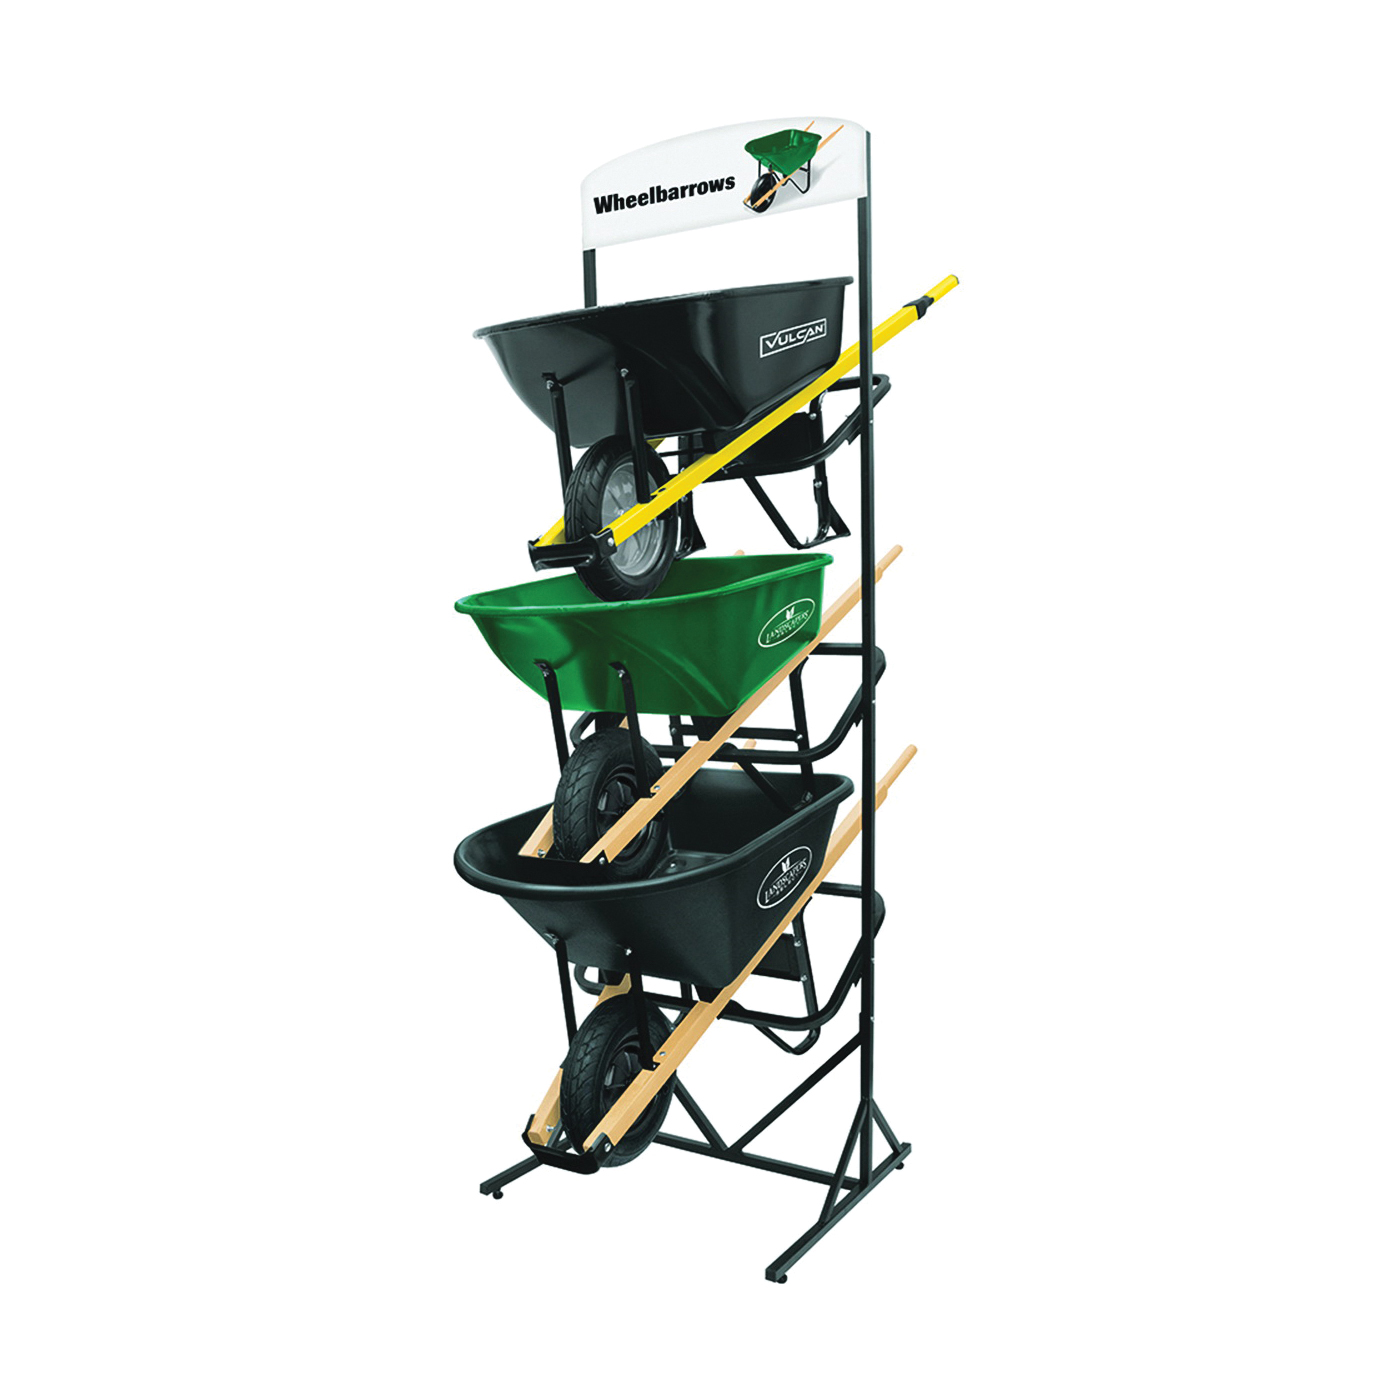 Picture of Vulcan 55432 Wheelbarrow Displayer with Sign, 32 in W, 98 in H, 30 in L